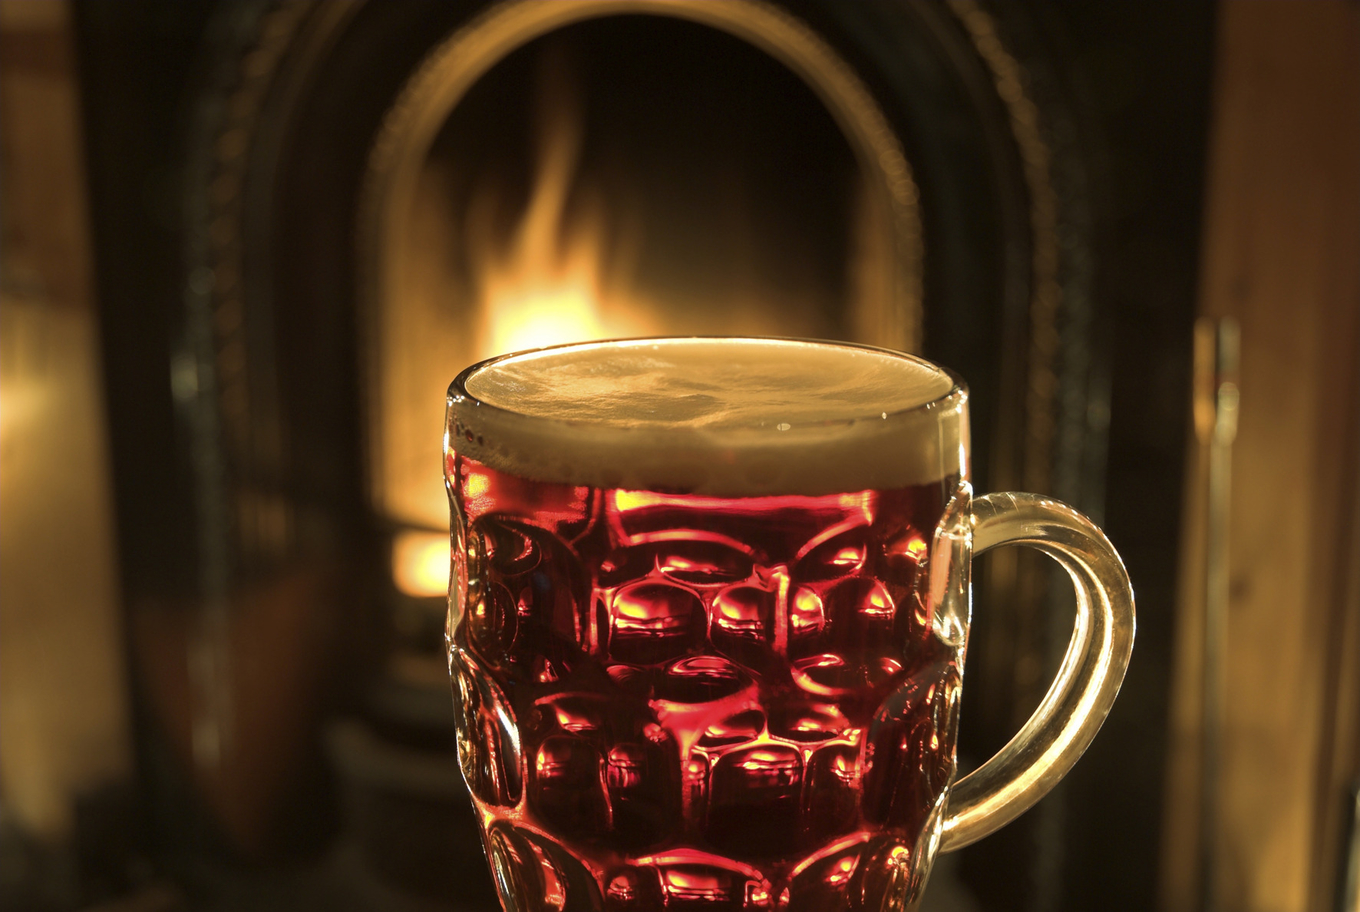 Winter and Christmas beers image 4